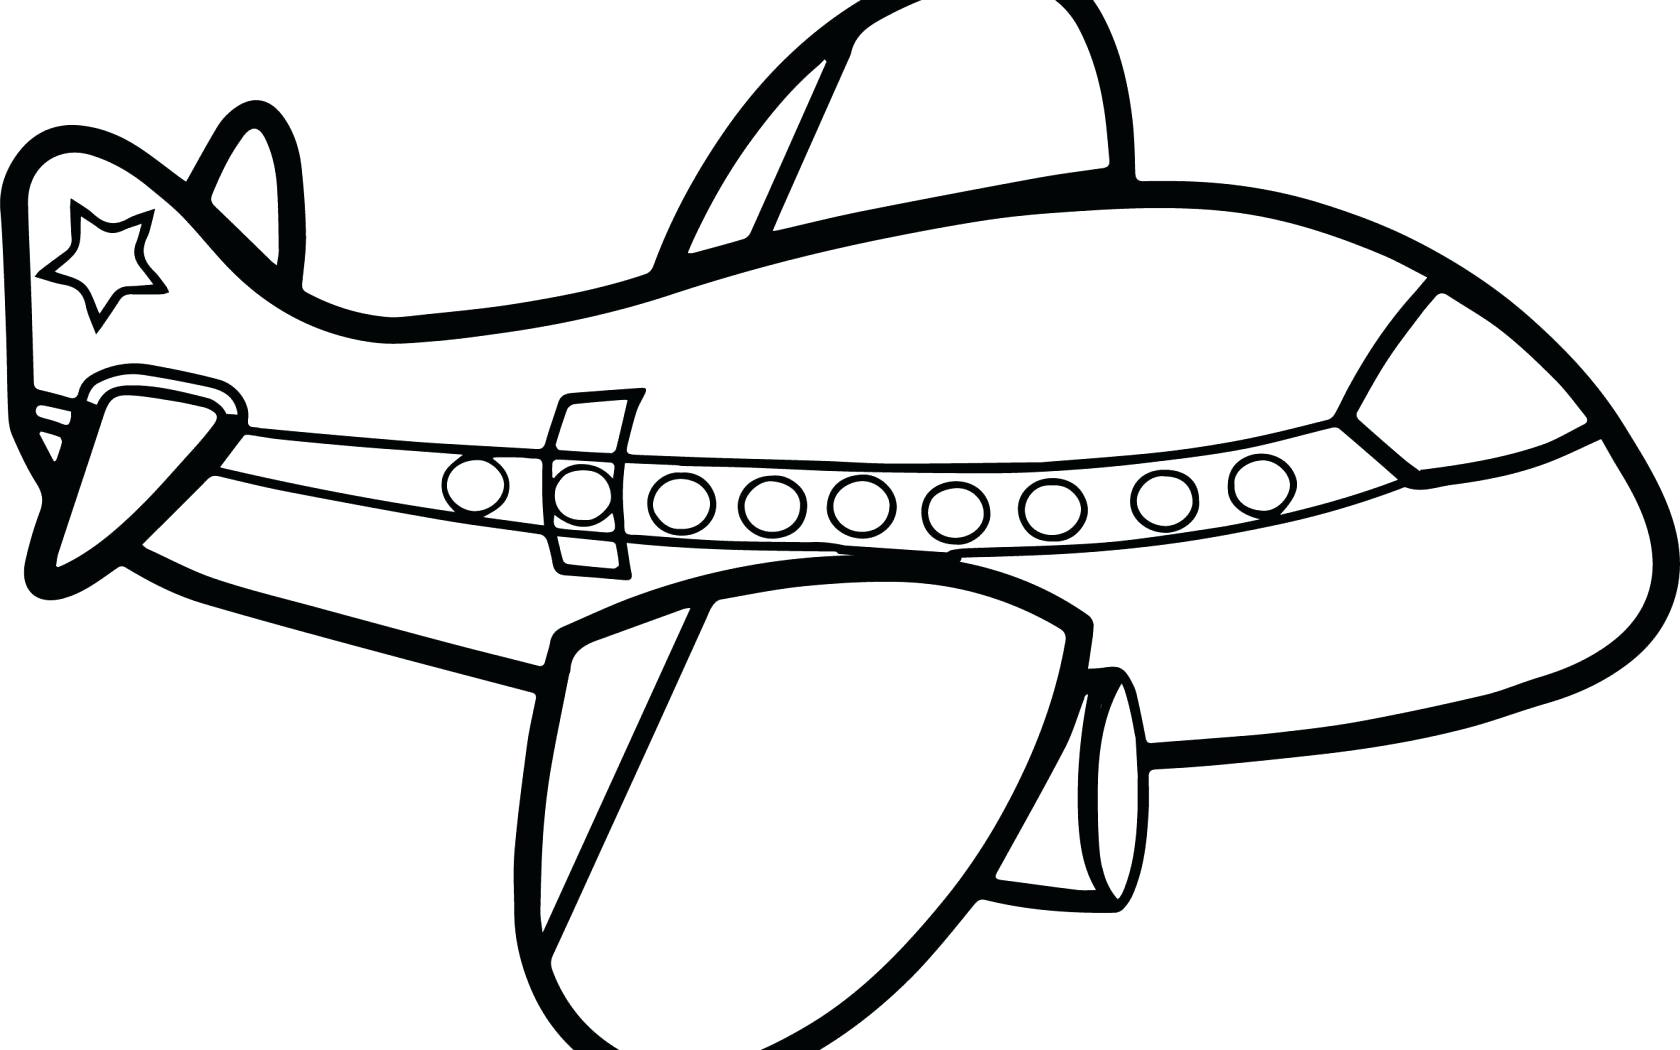 Aeroplane Drawing For Kids At Getdrawings